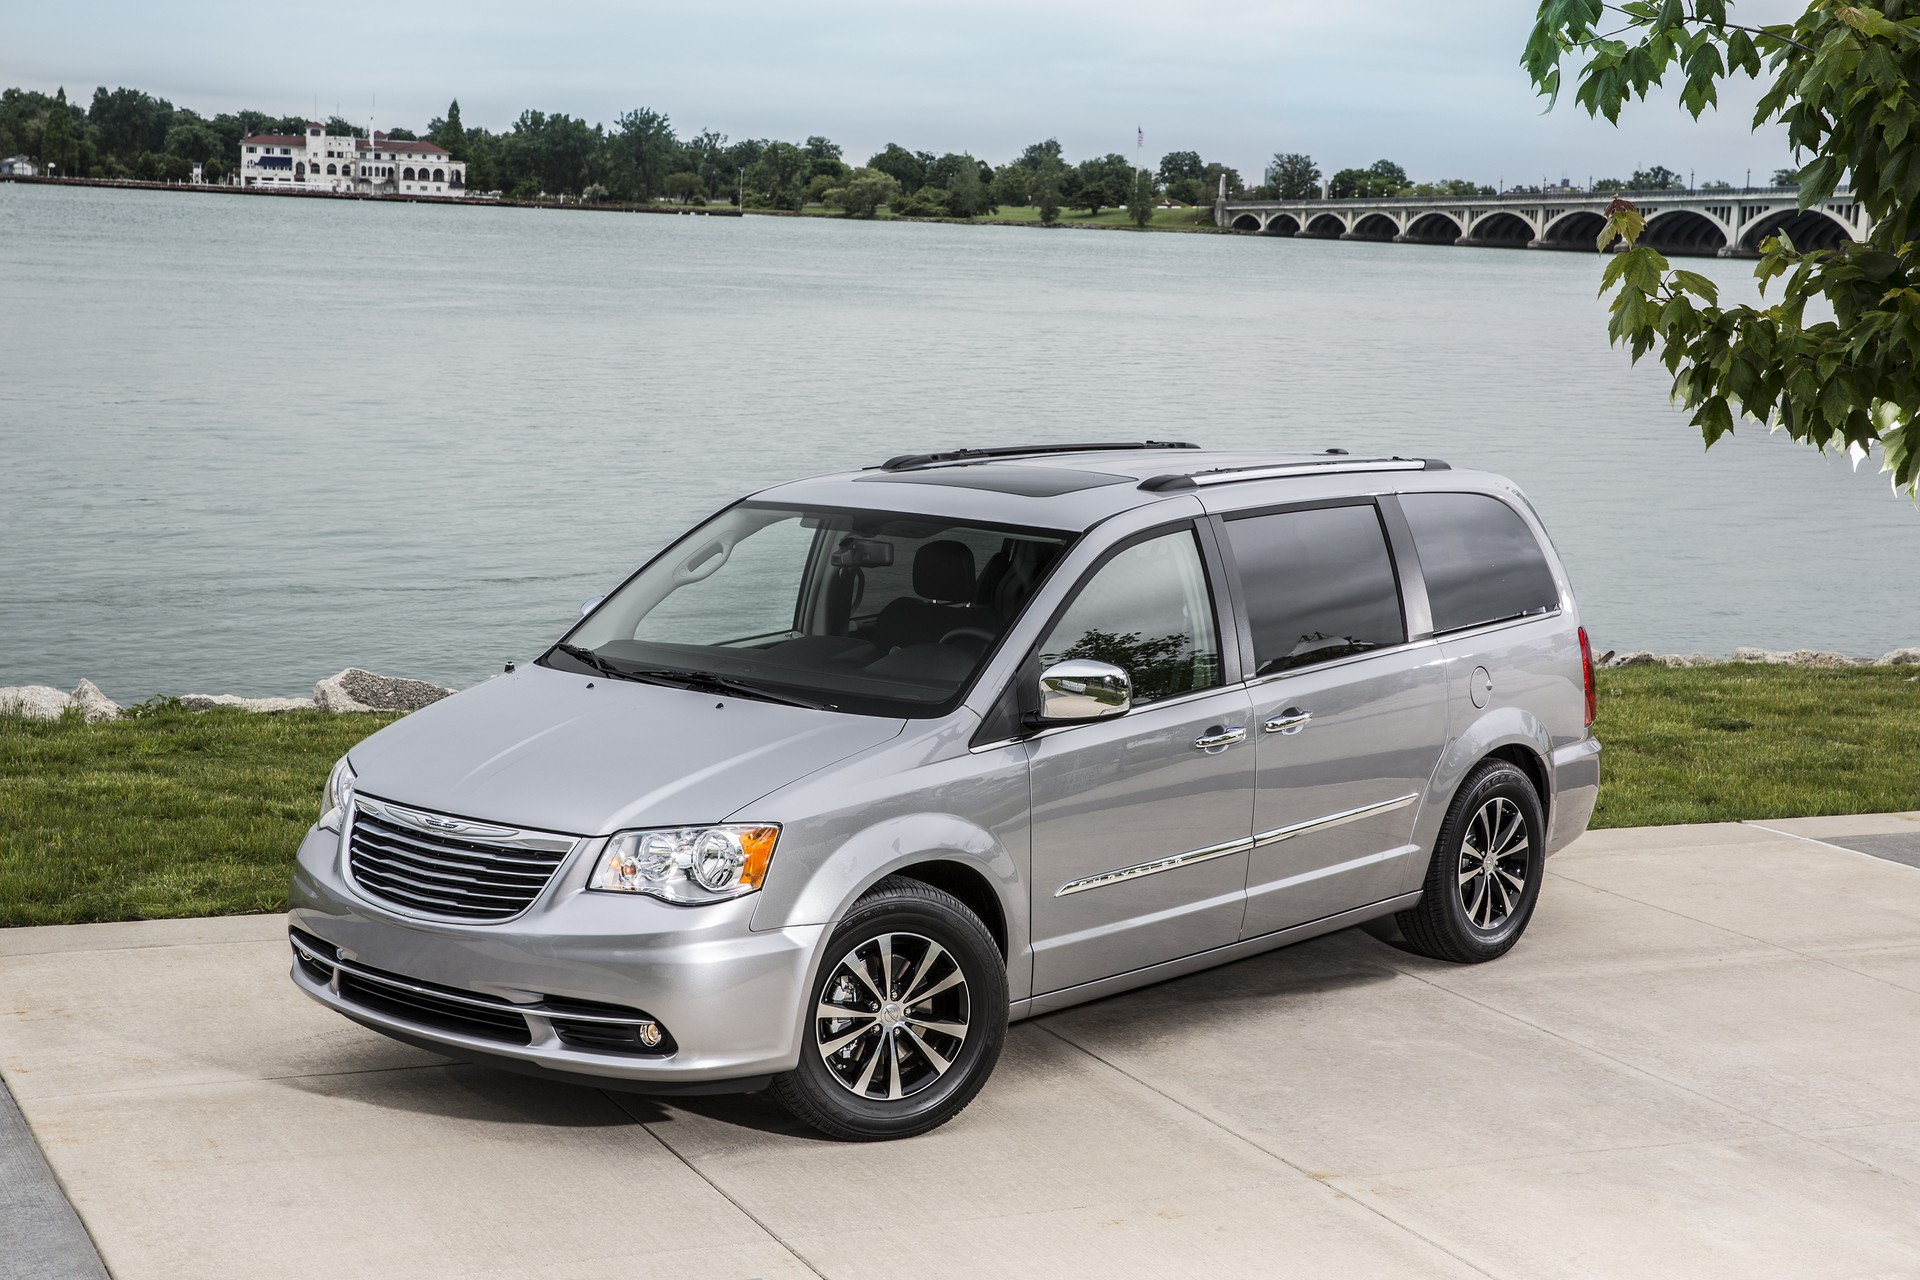 New Chrysler Minivan Might Get Electric All Wheel Drive CEO